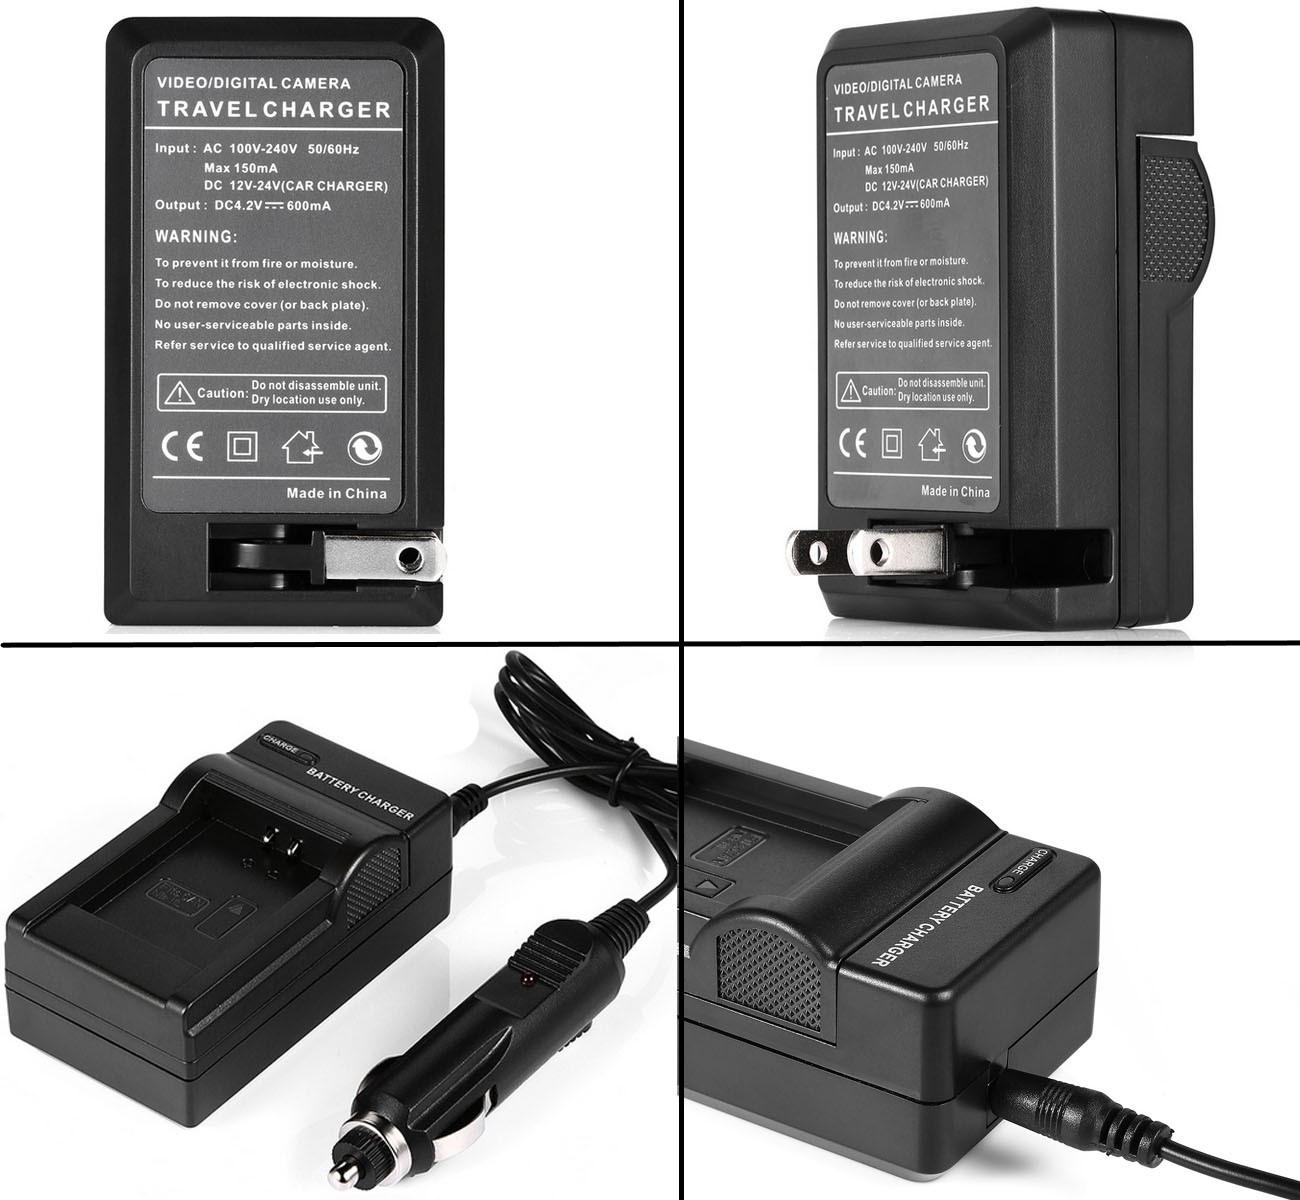 SC-D590 SC-D590T Digital Video Camcorder SC-D530T Battery 2 Pack and LCD USB Travel Charger for Samsung SC-D530